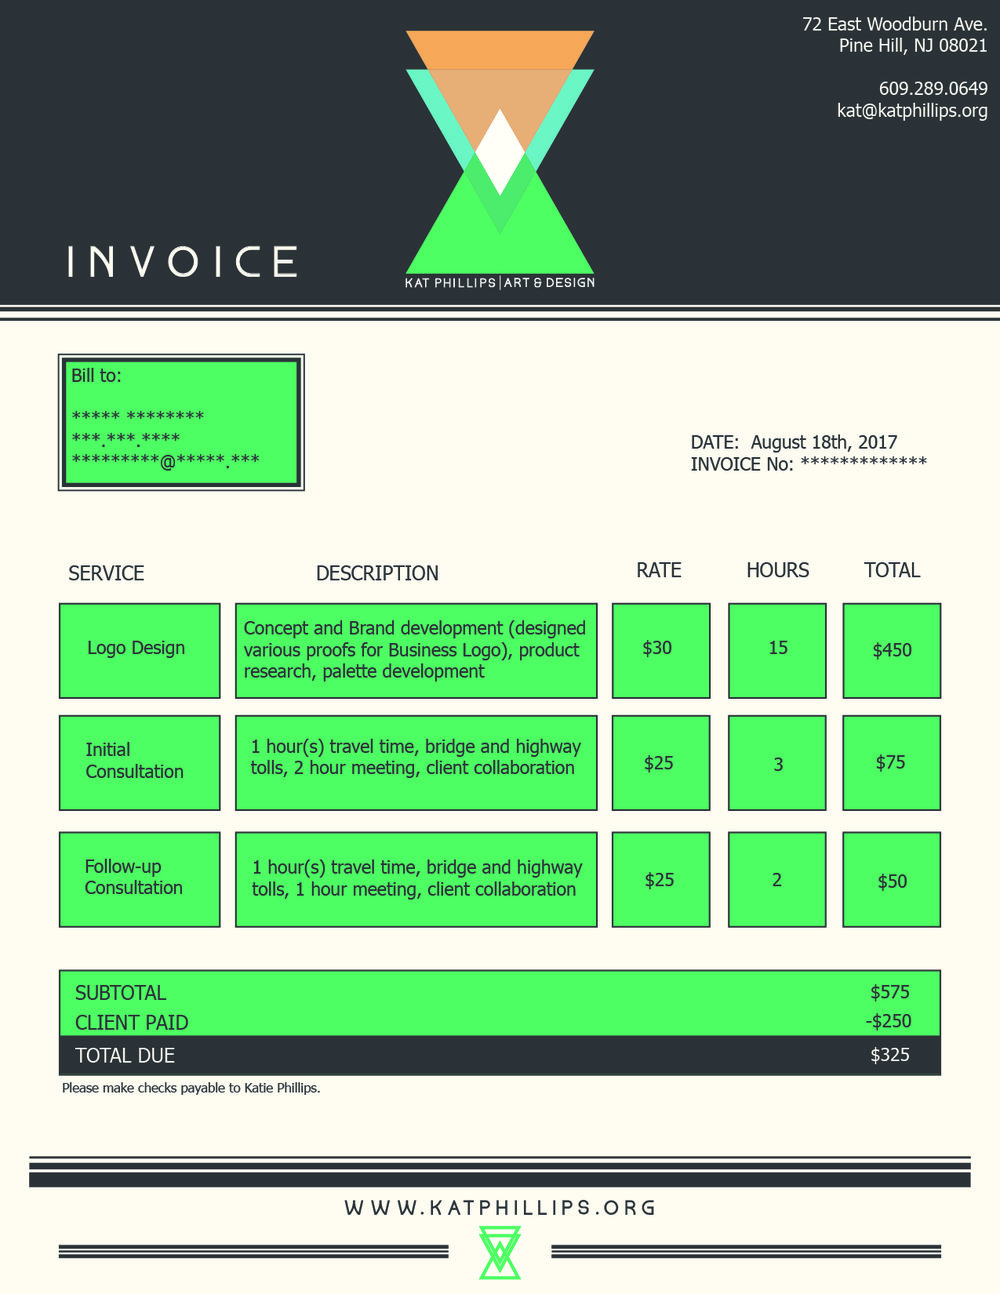 Kat Phillips Art & Design Invoice Layout